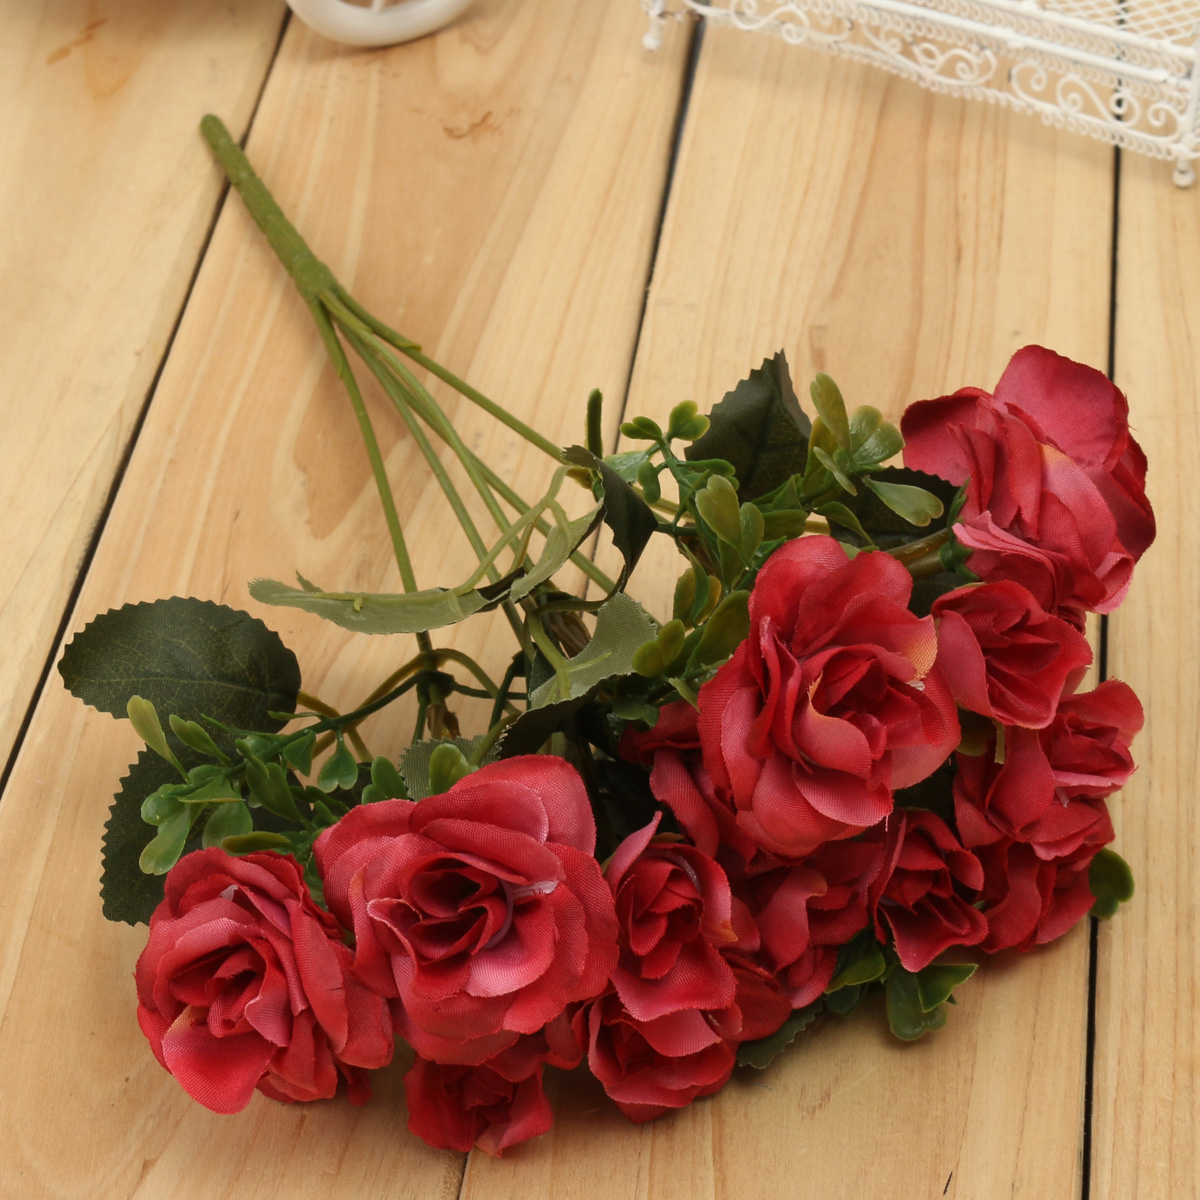 4 Colors Artificial Rose Bouquet Simulated Flowers Leaf Home Wedding Garden Decorations